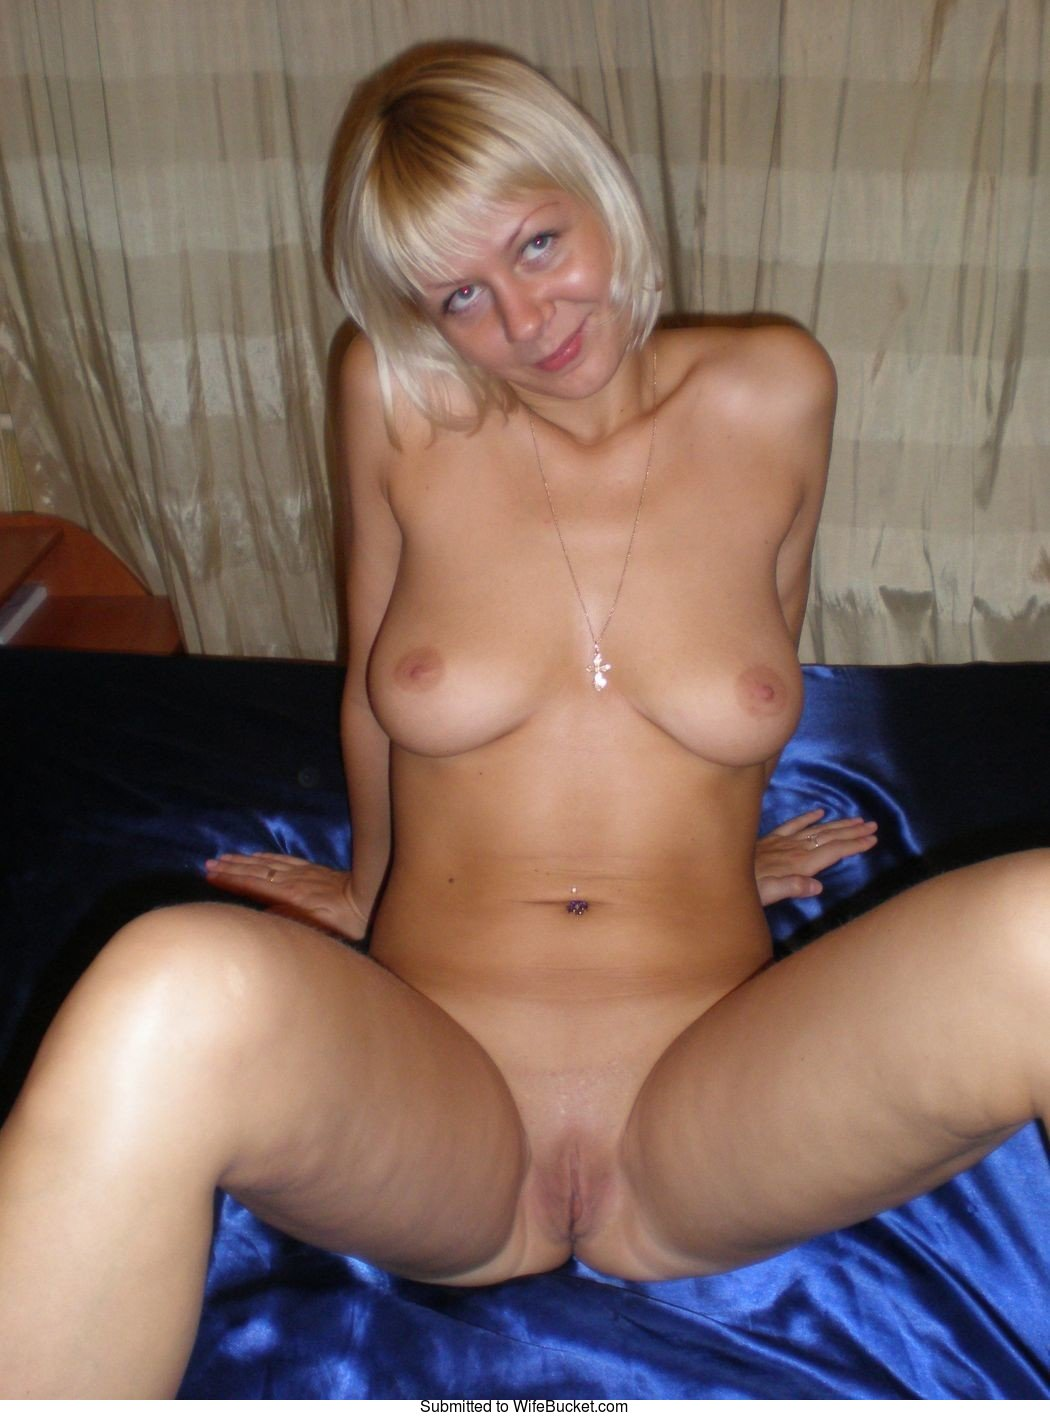 Nude girlfriends and wives-6662